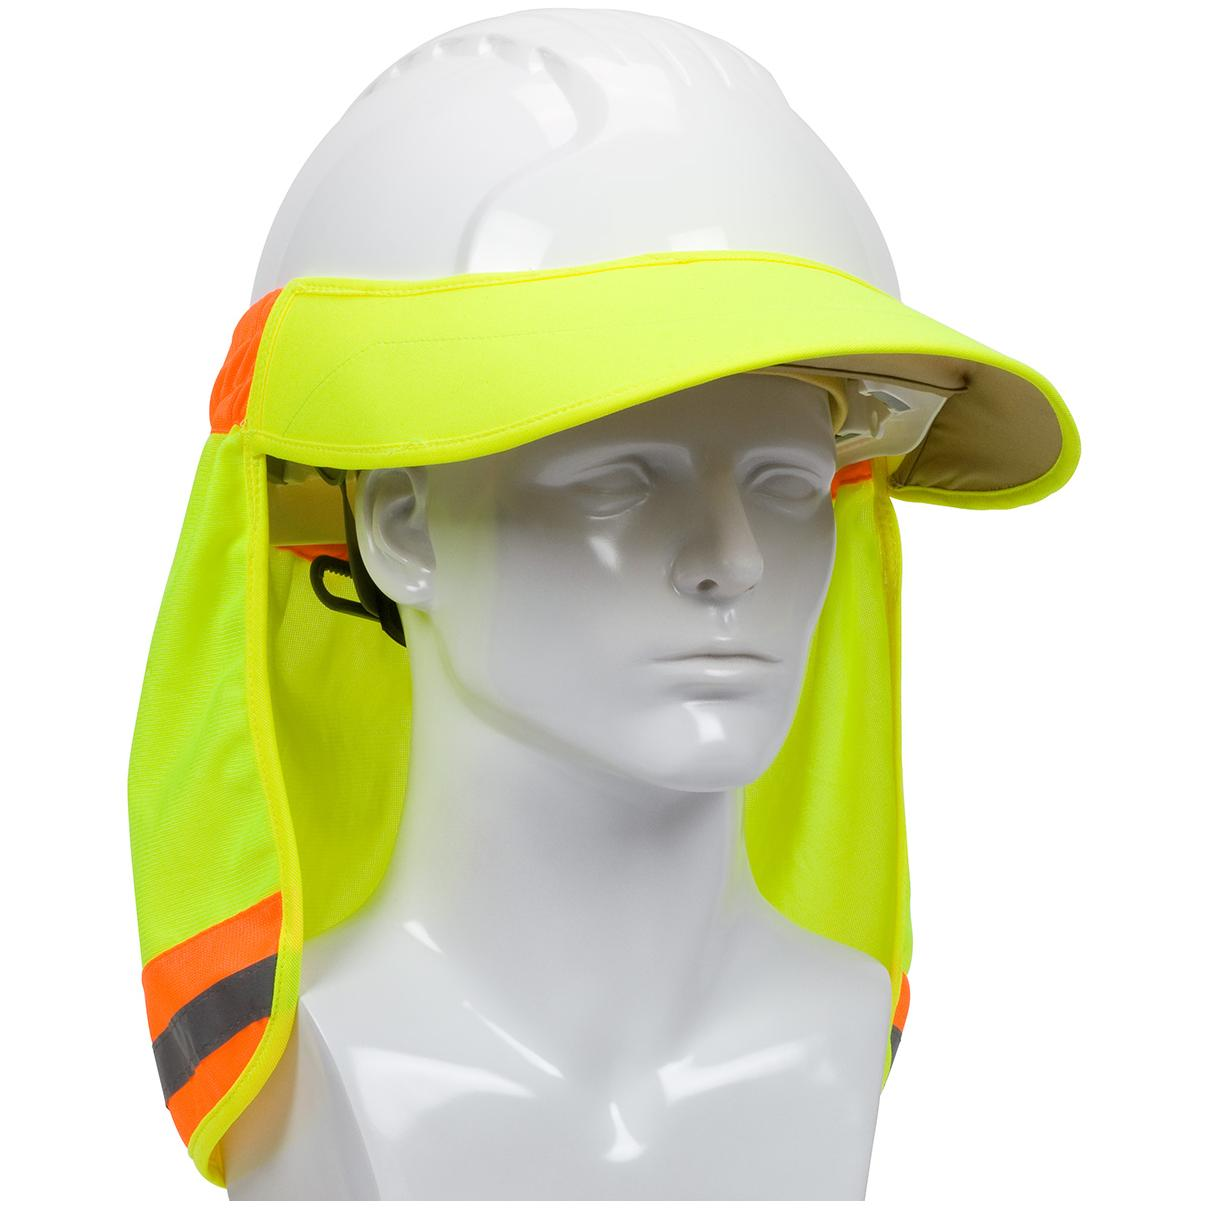 PIP 396-800 EZ-Cool Hi-Vis Hard Hat Visor and Neck Shade - Yellow Lime a1facd23ab9